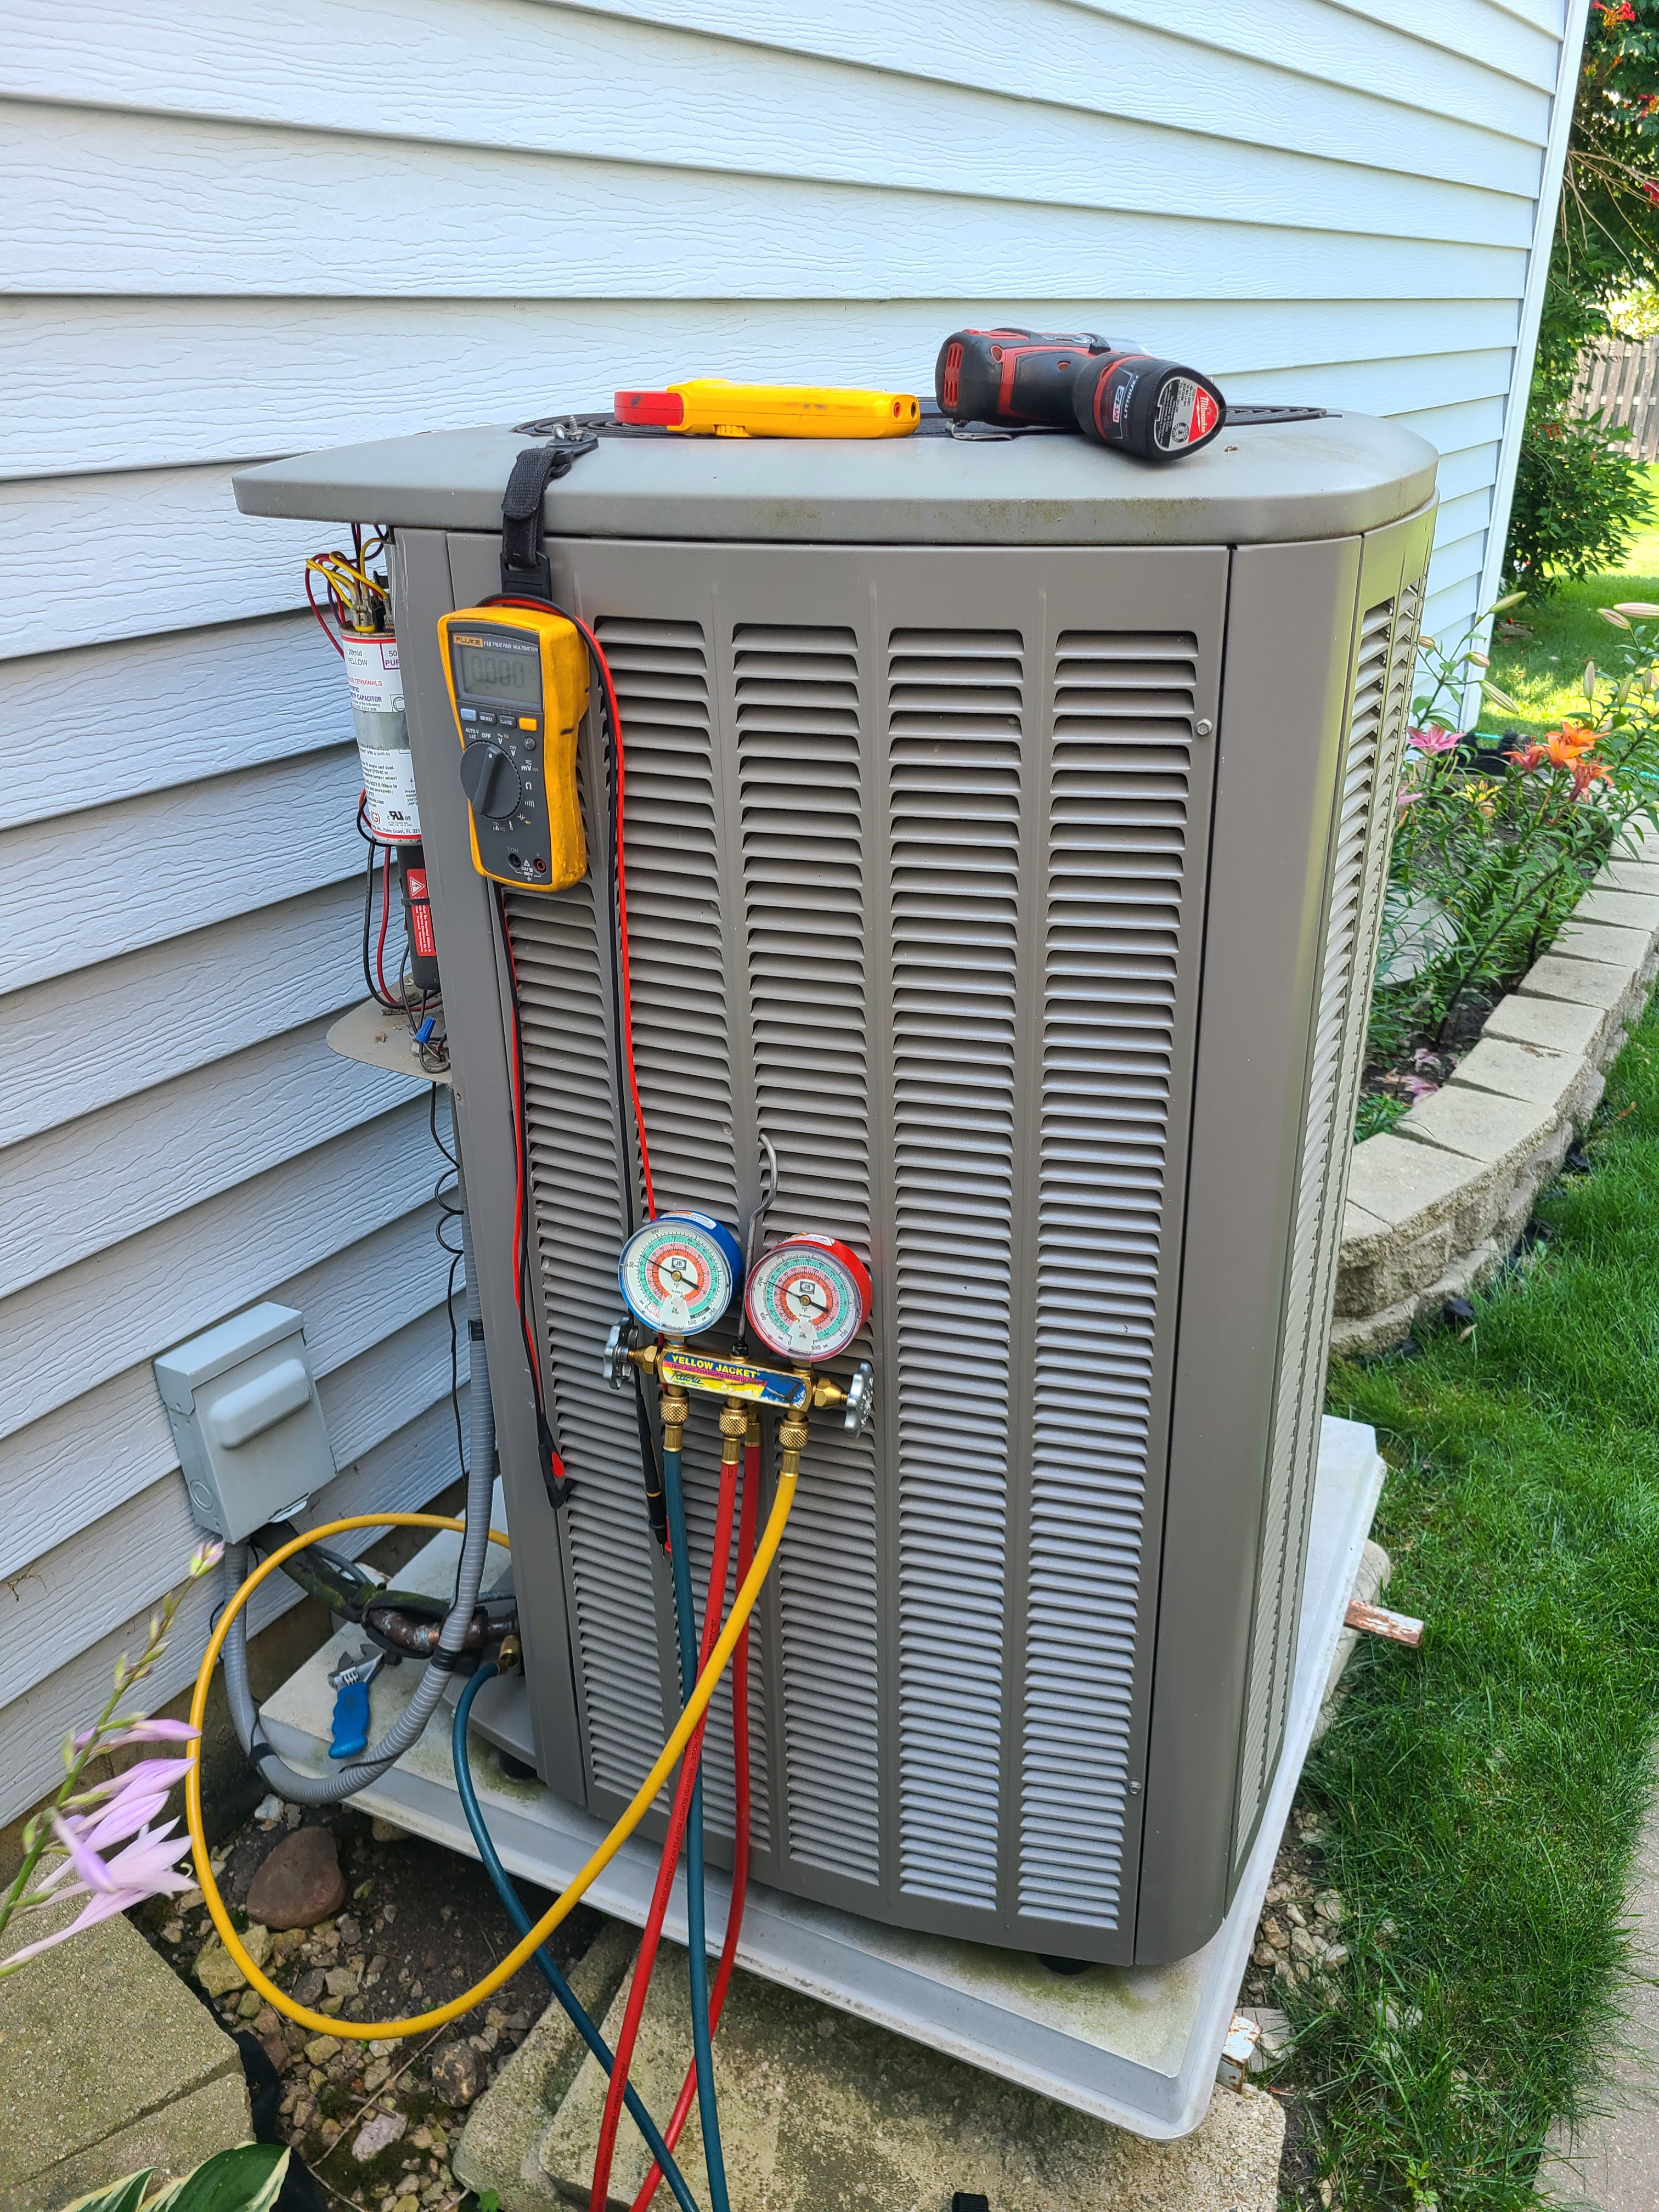 Lennox ac maintenance and repair. System cleaned and checked and ready for summer.